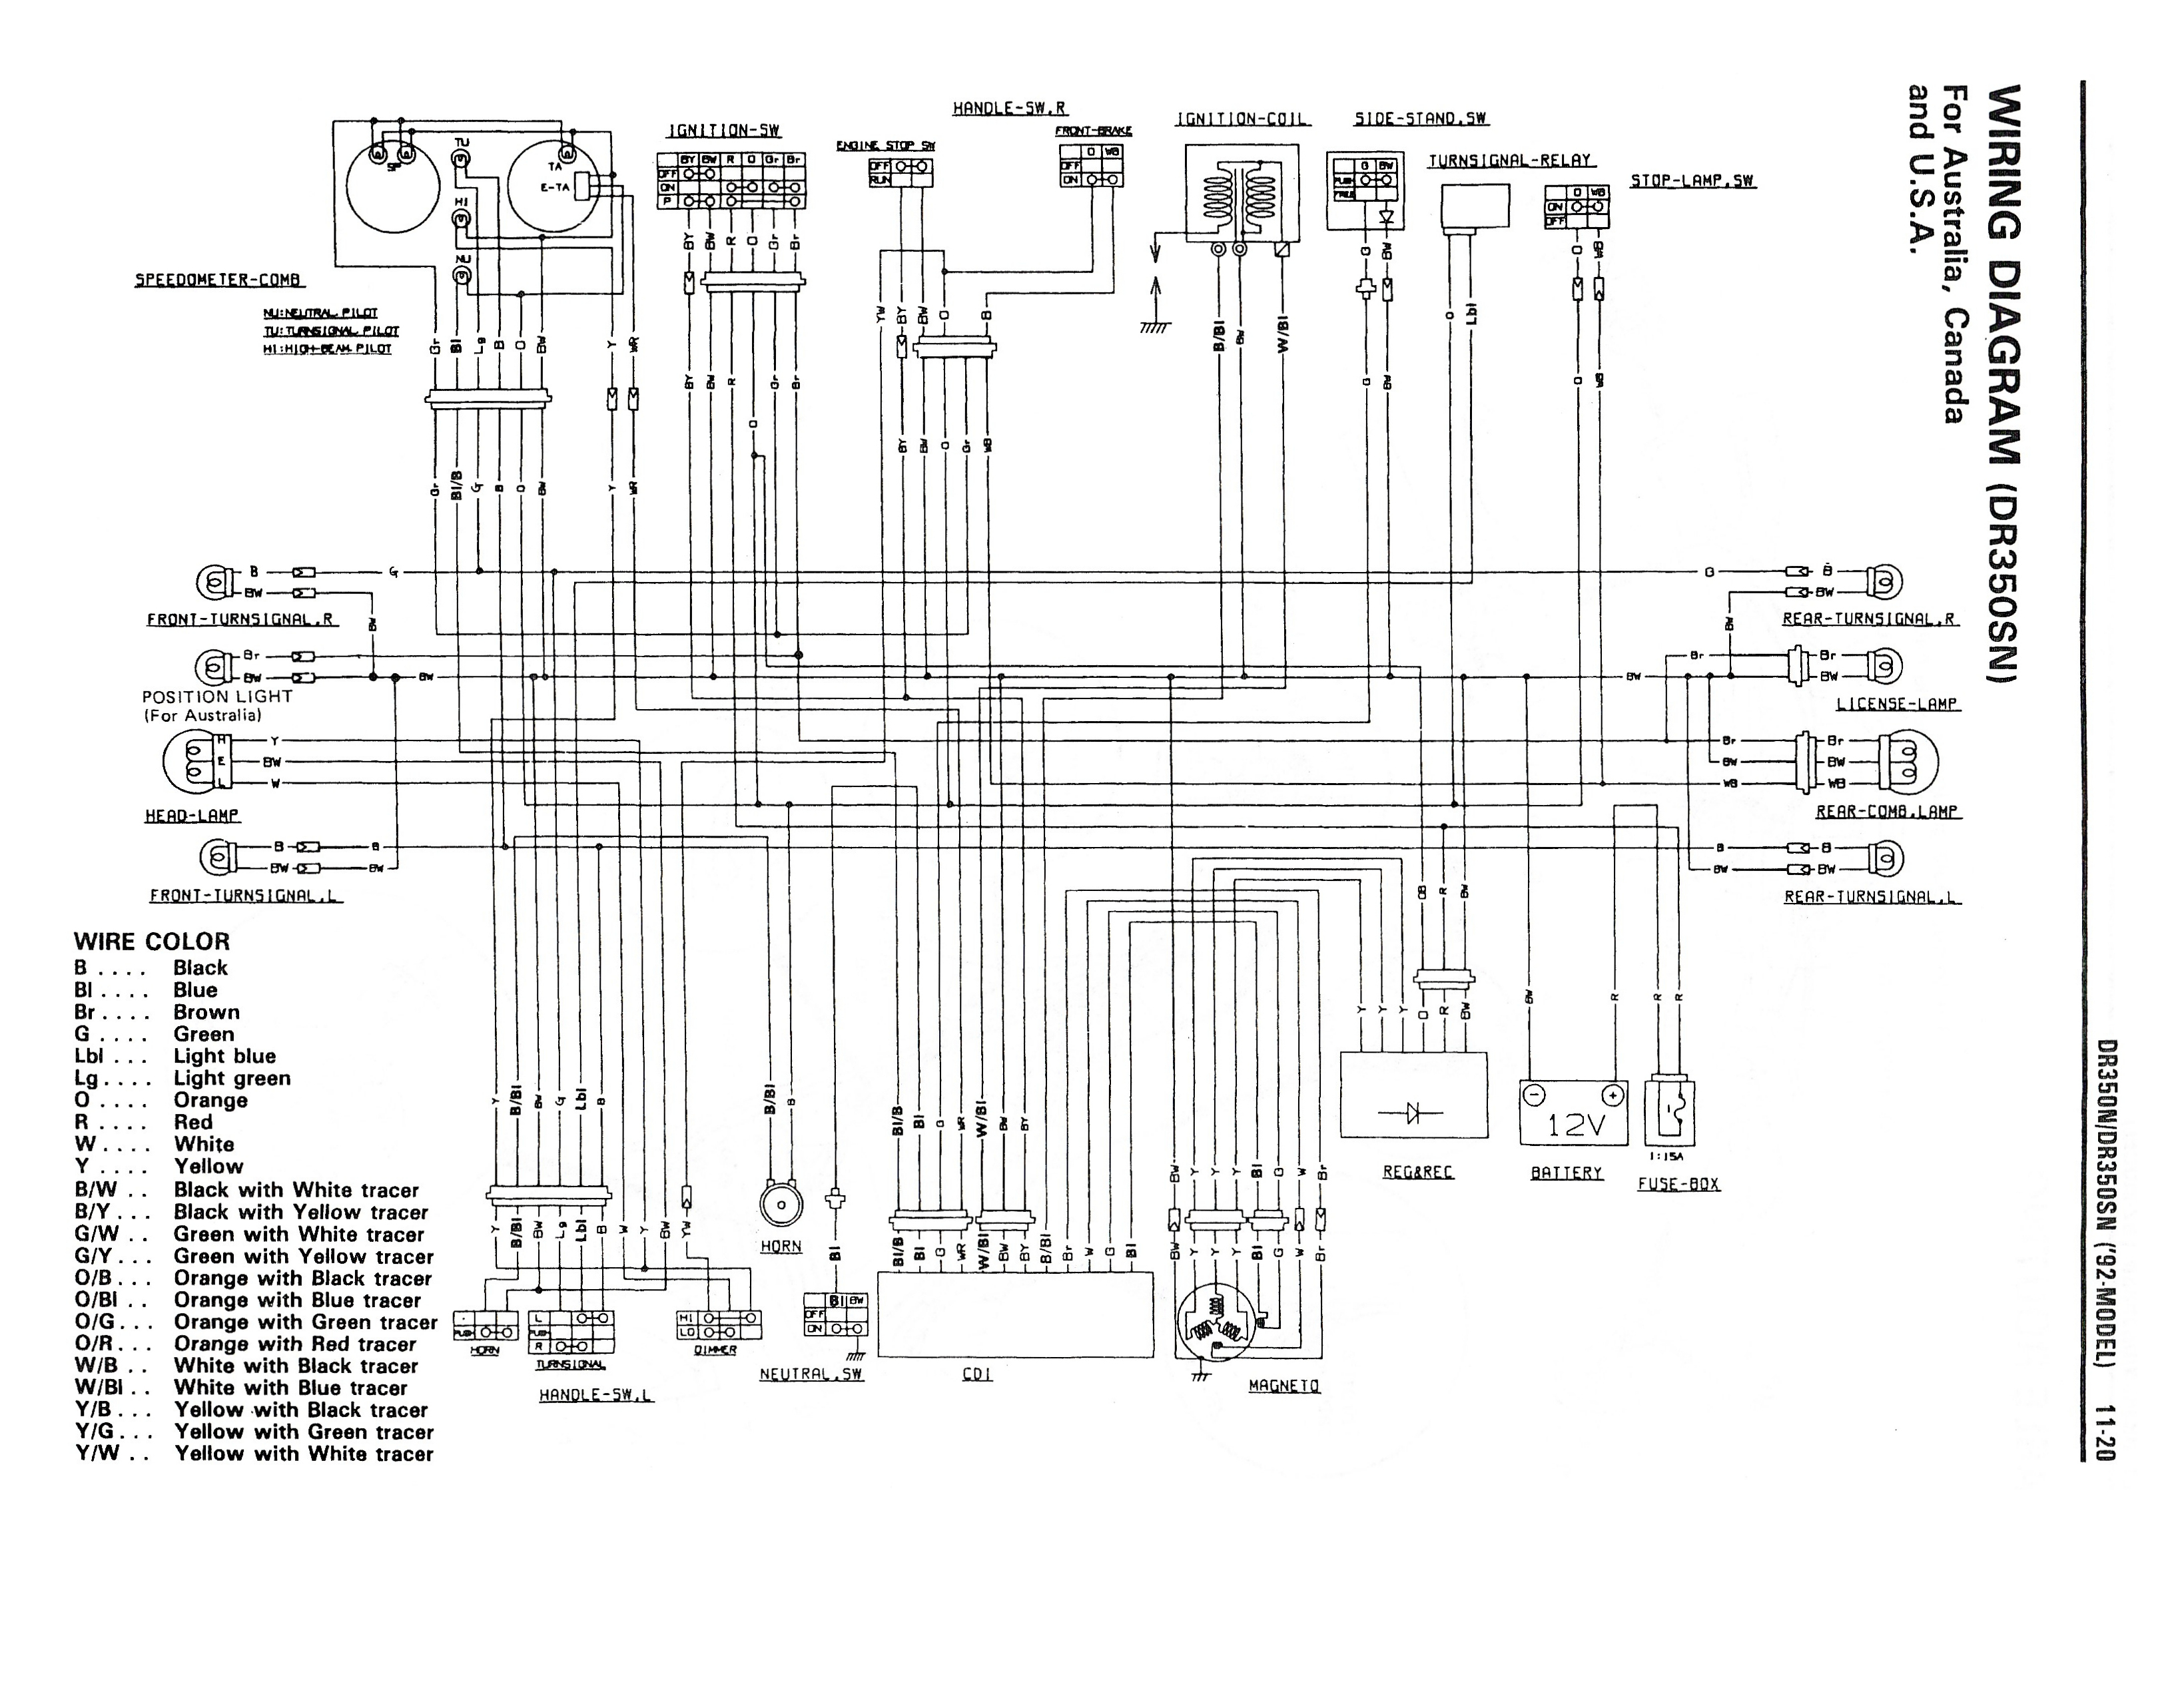 wiring diagram for the dr350 s (1992 and later models - australia, canada,  usa) - suzuki parts - suzuki dr350 - topics - gregory bender  gregory bender